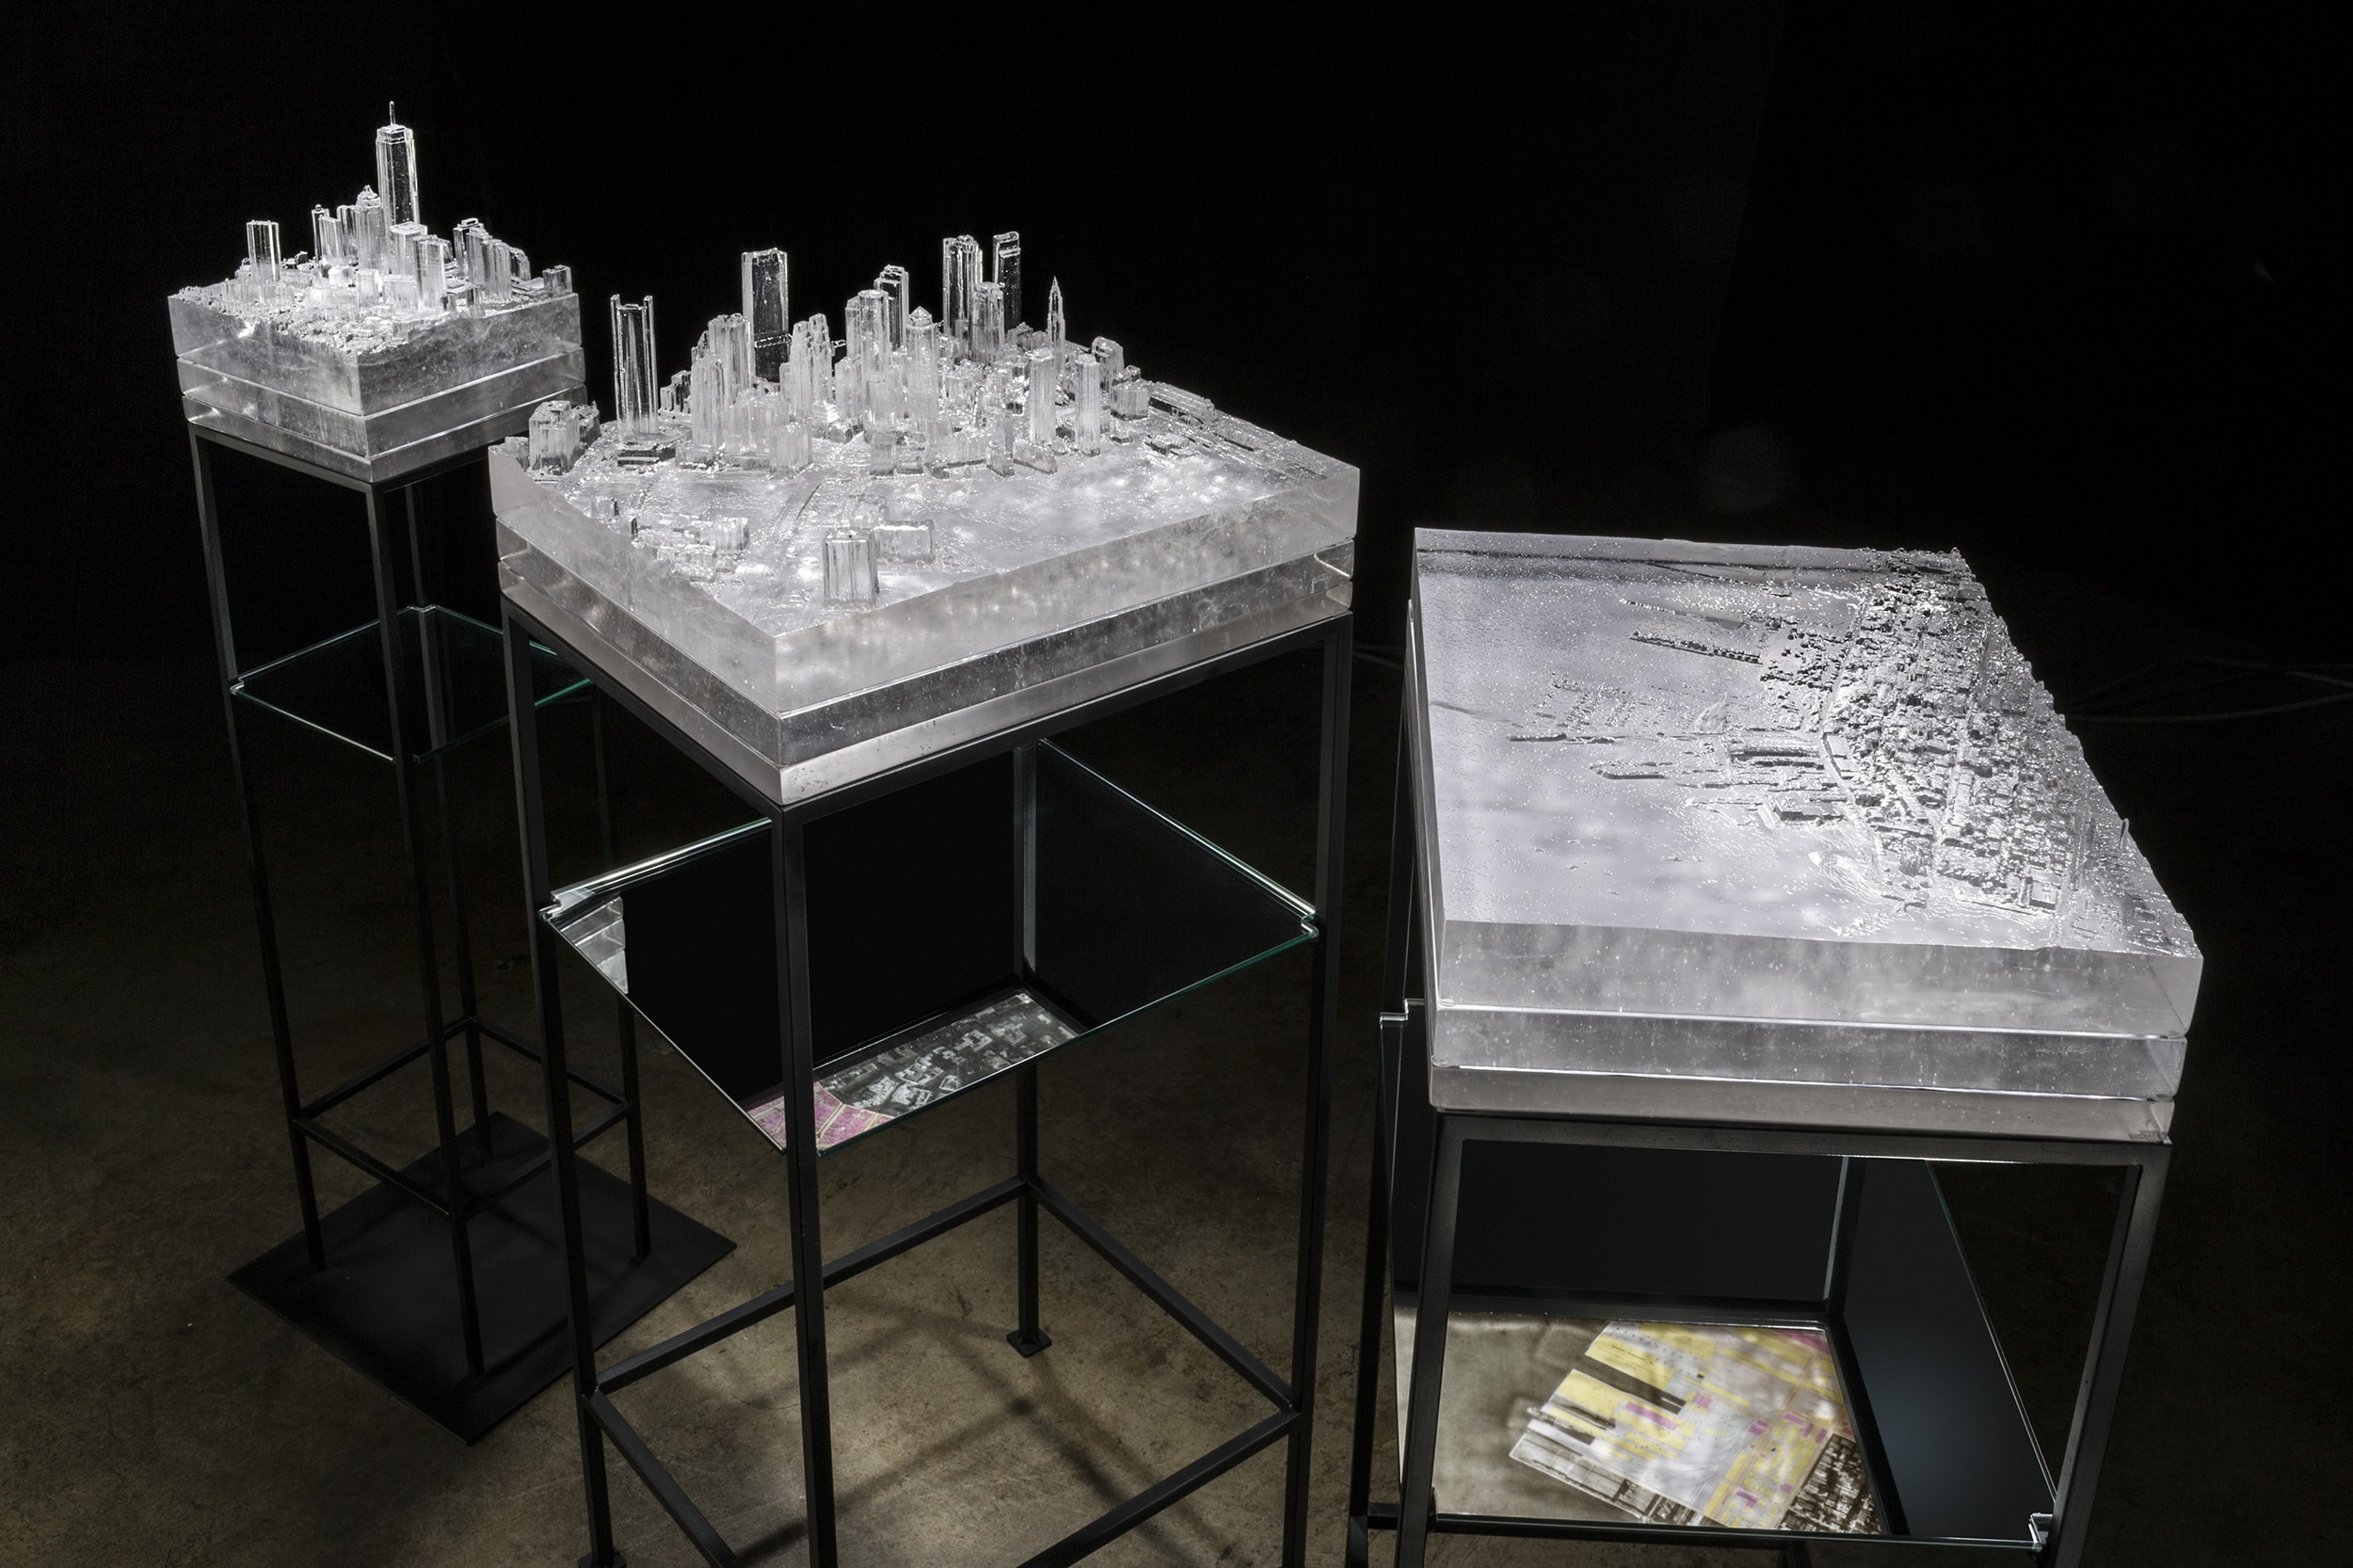 Mining Industries: Boston (installation view)